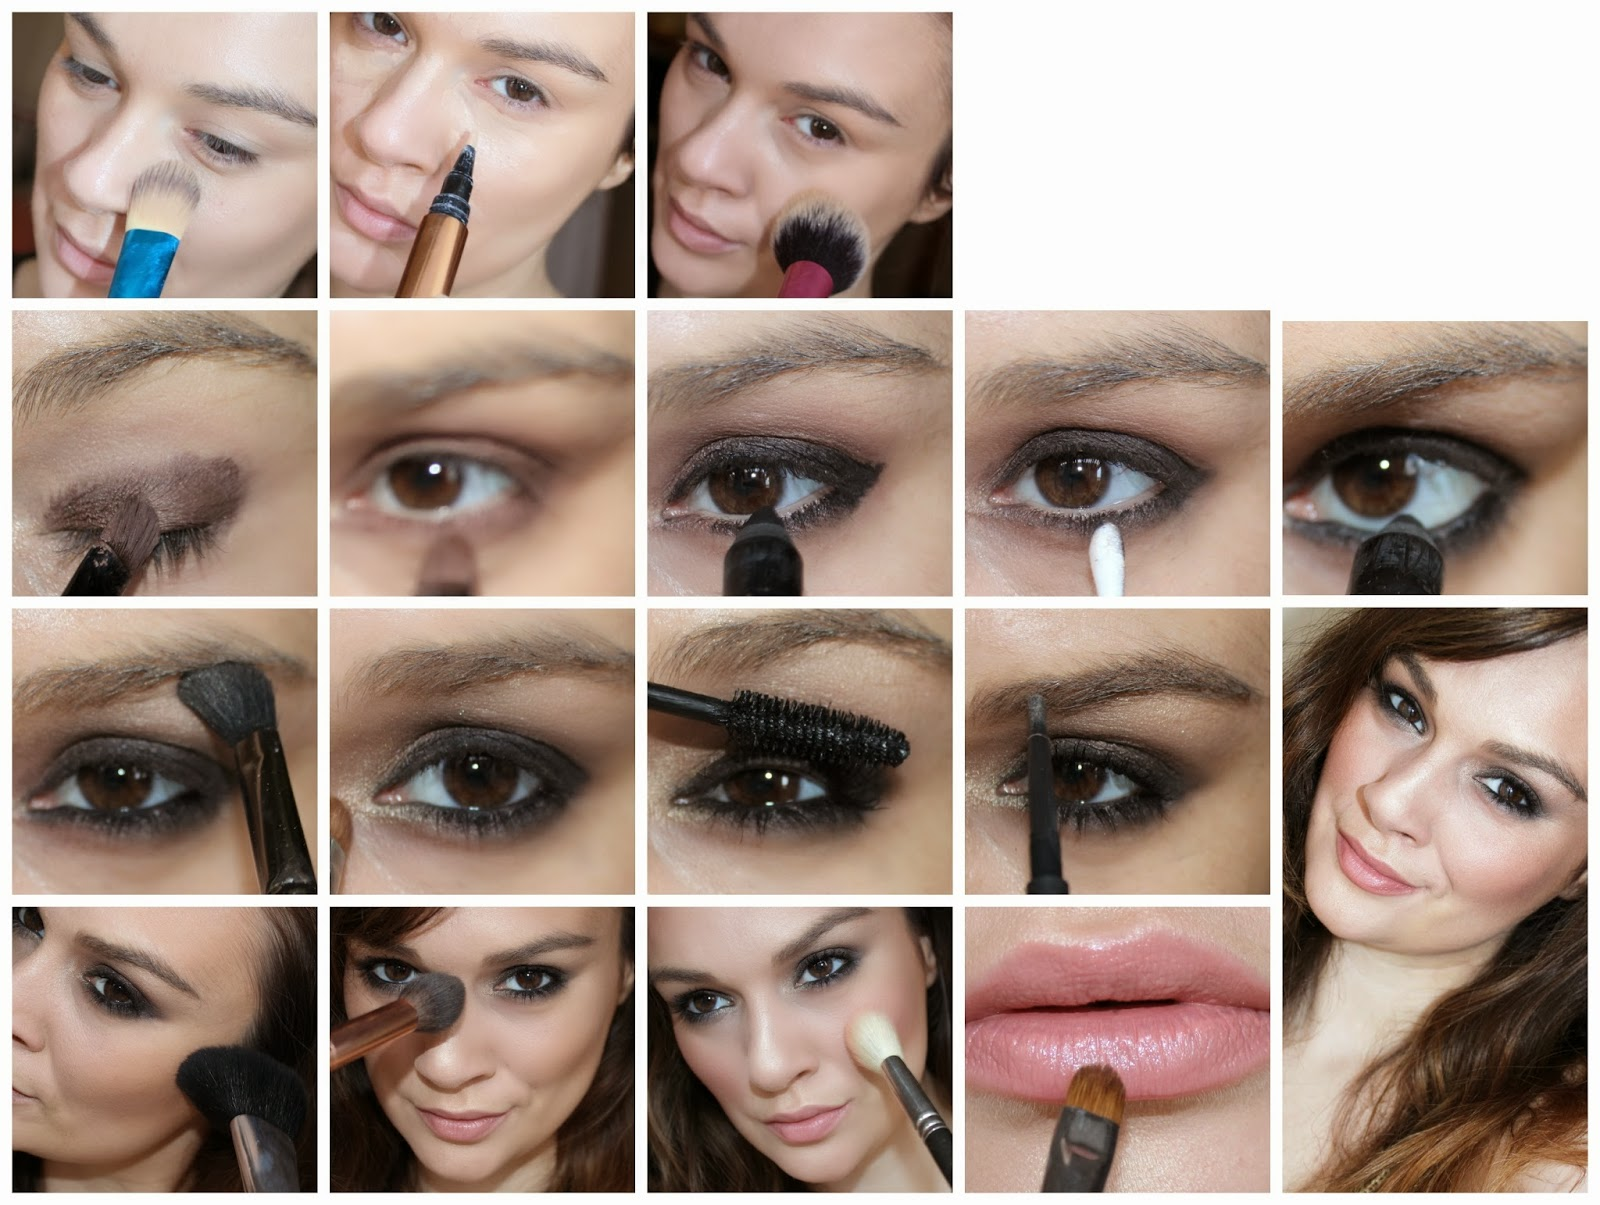 Pictures of eye makeup application